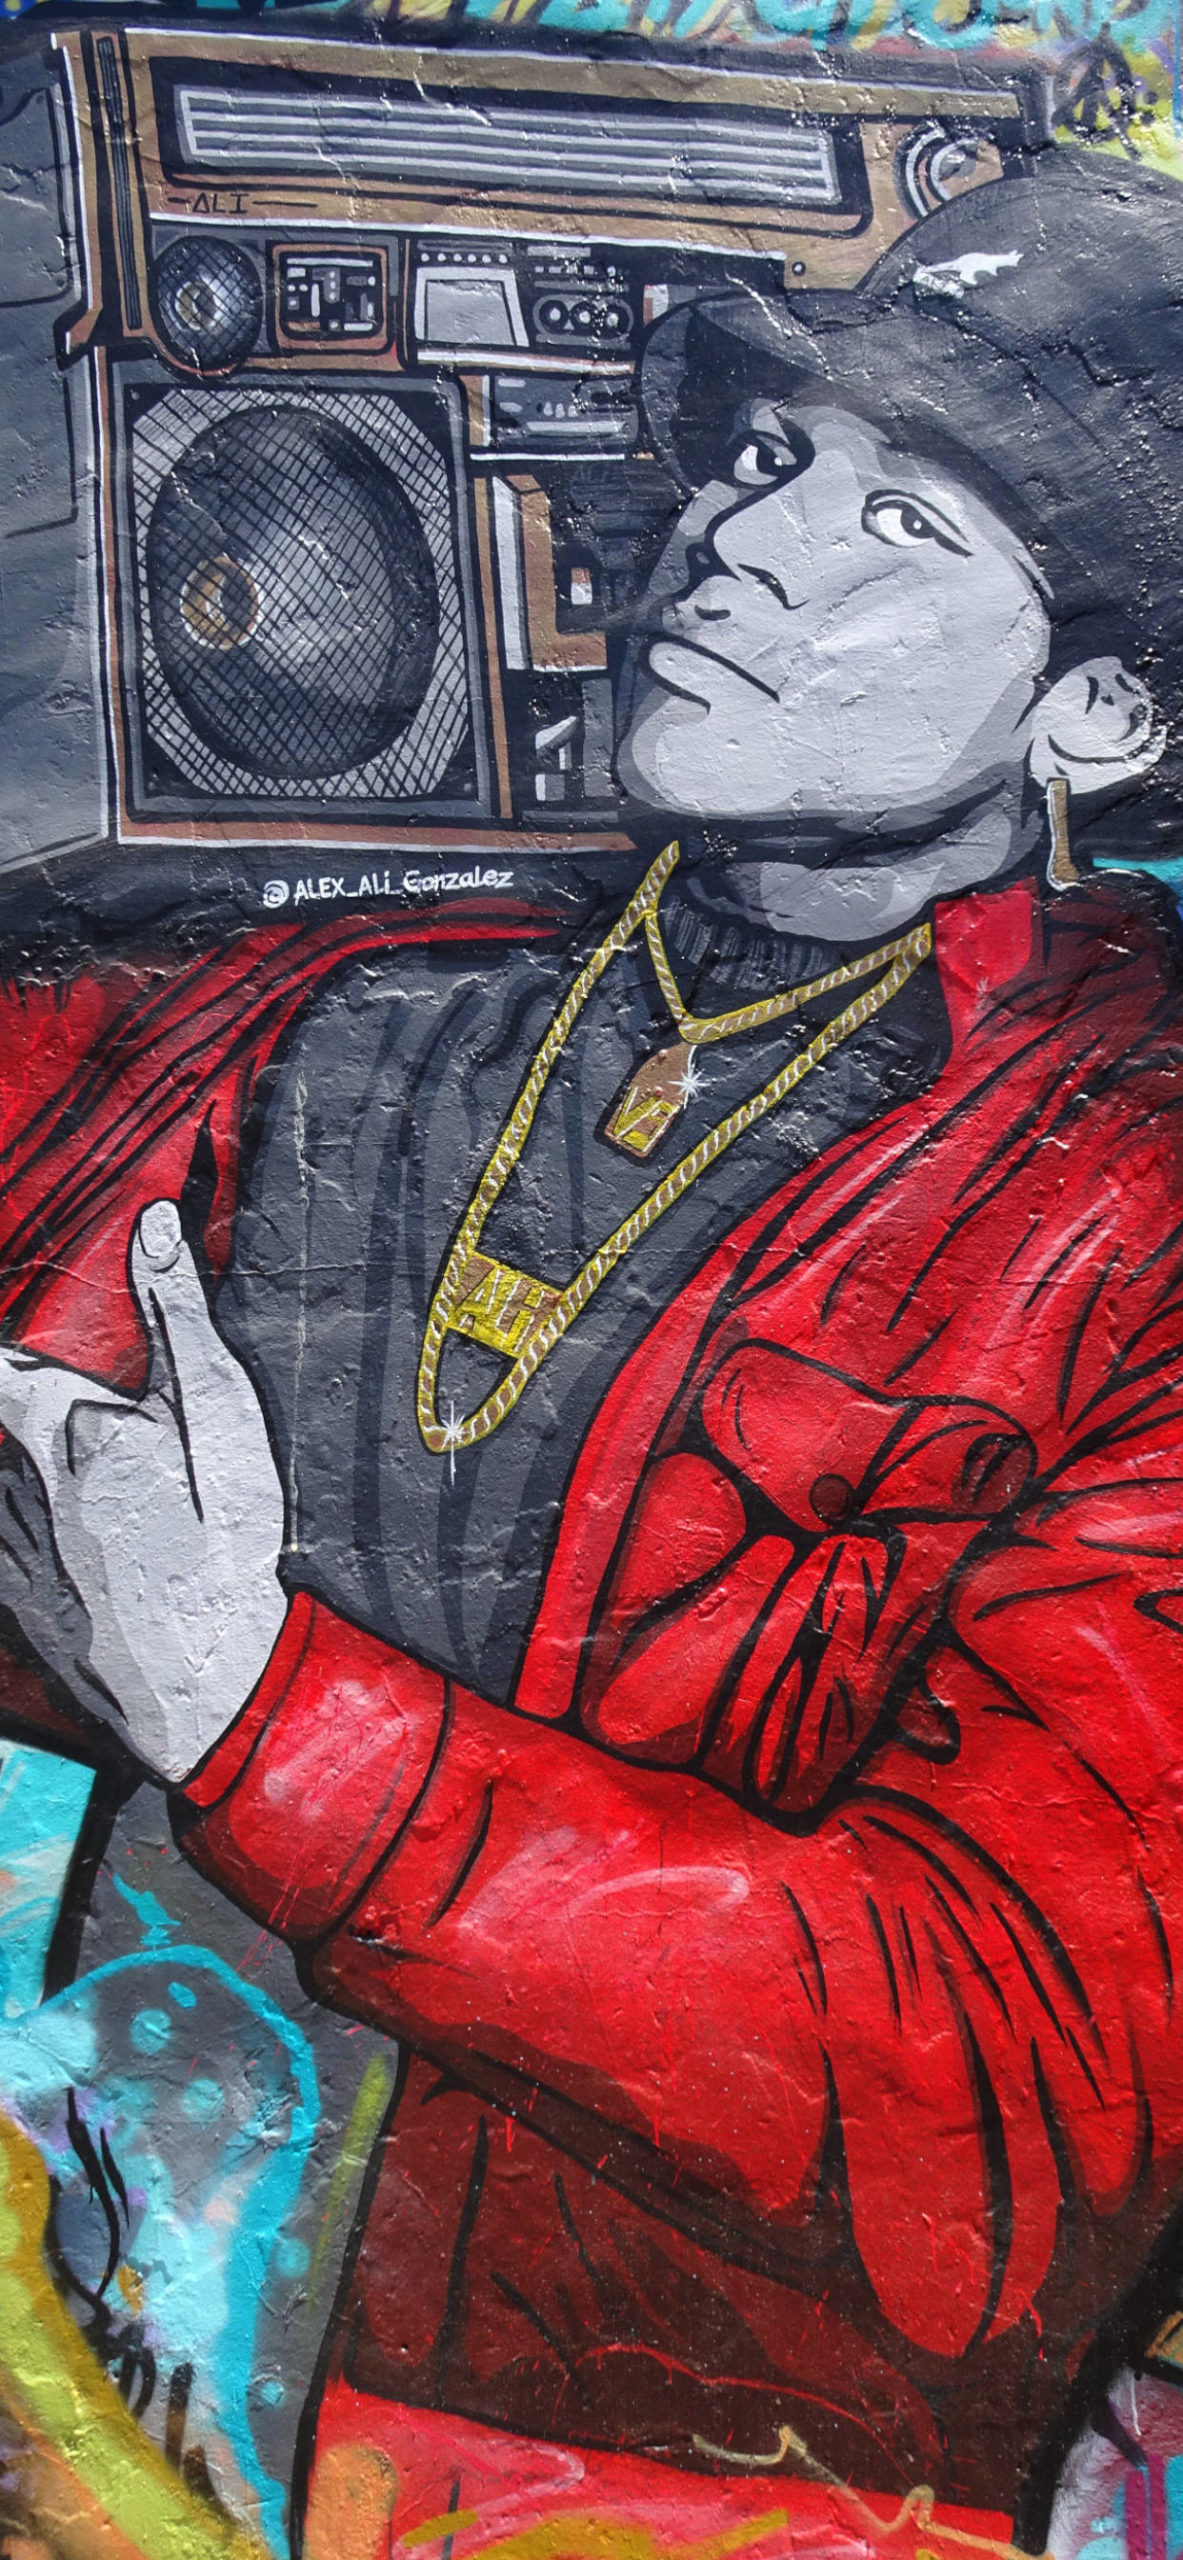 iPhone wallpapers mural hip hop scaled Mural